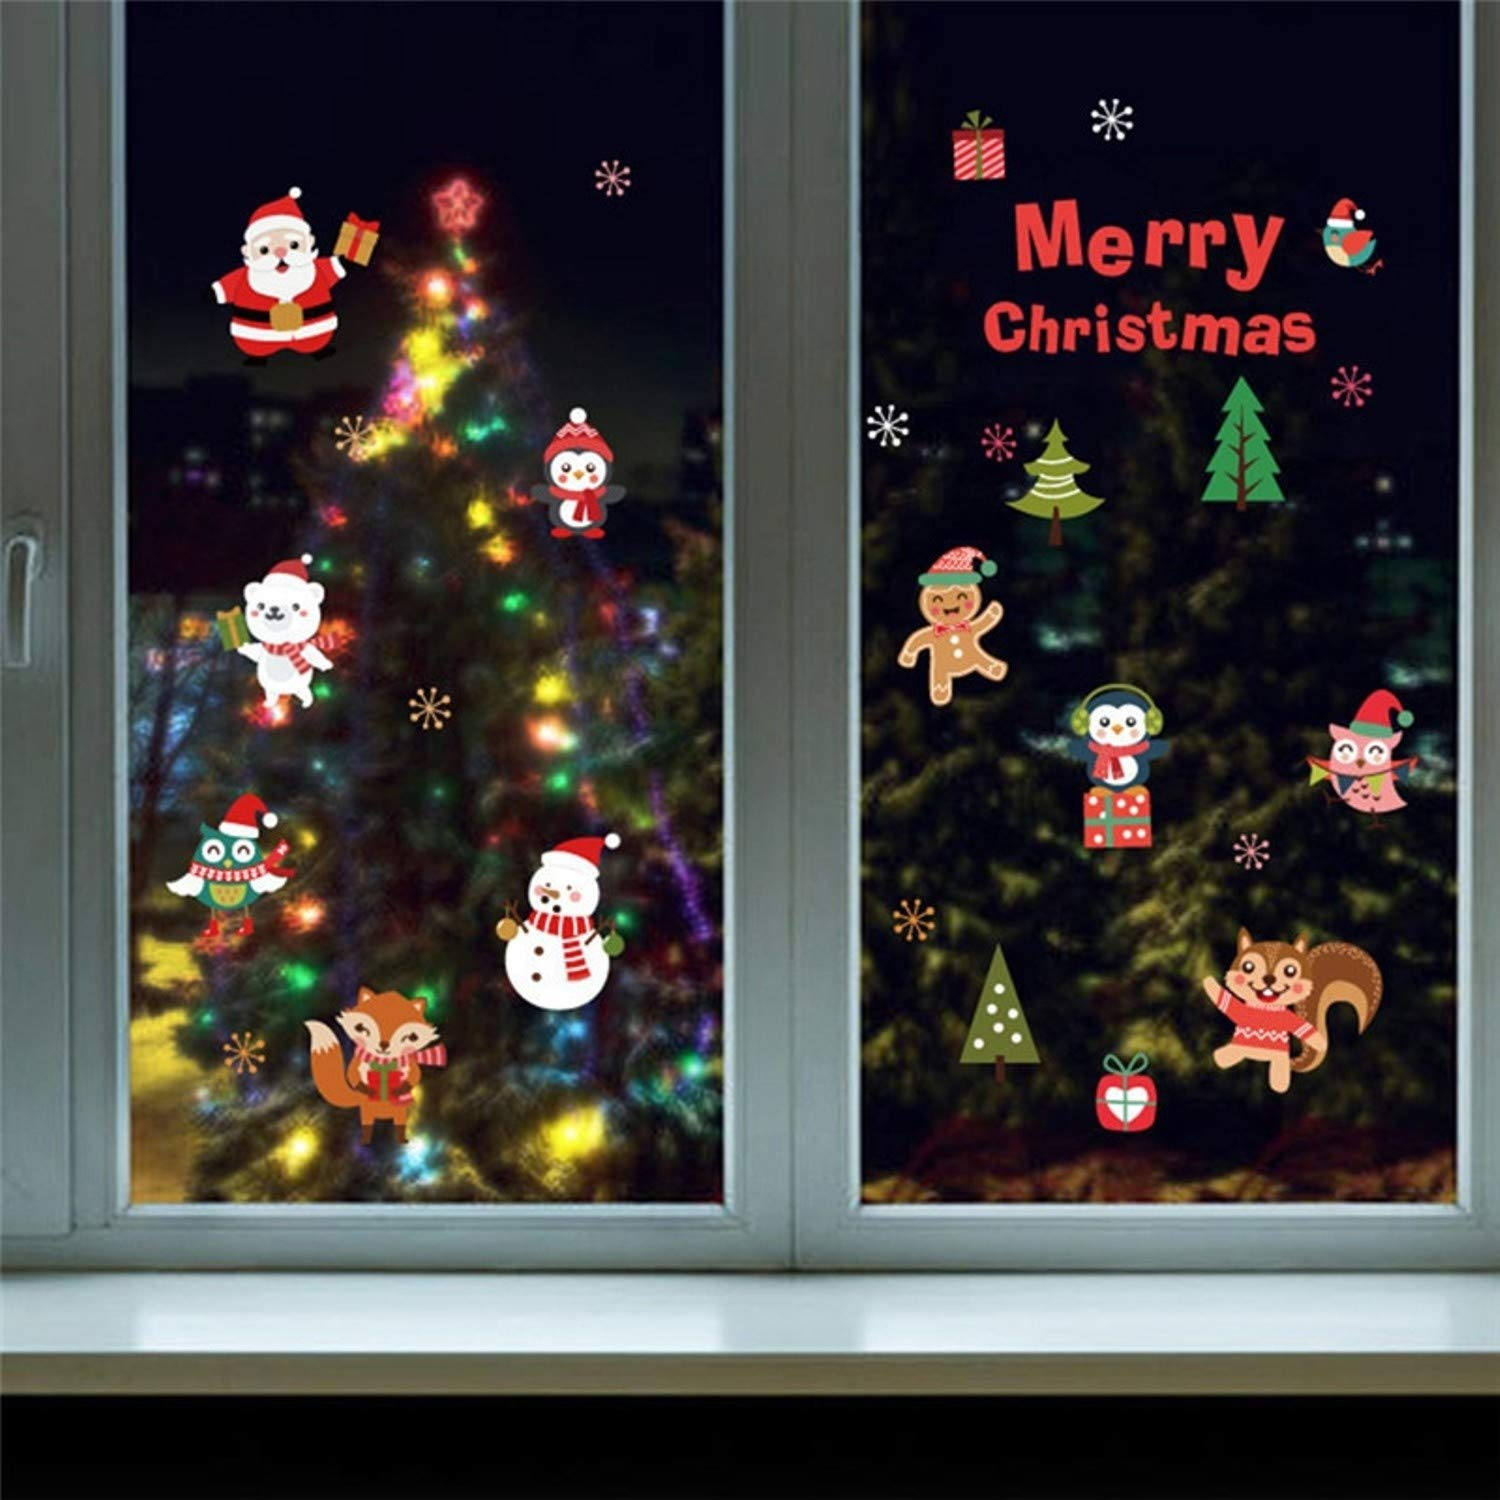 Amazon.com: Chitop DIY White Snow Christmas Wall Stickers - Window Glass Festival Decals Santa Murals New Year Christmas Decorations for Home Decor (4): ...